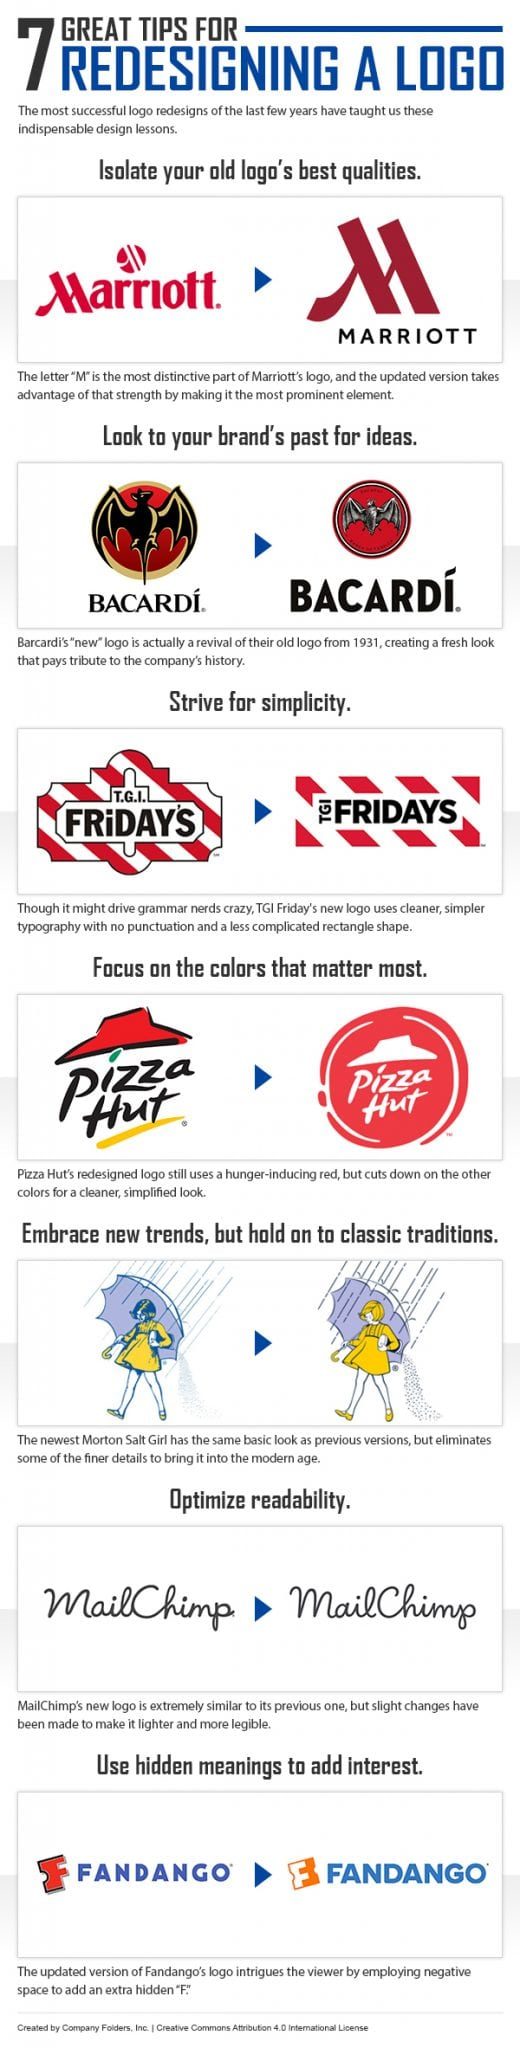 Photo of 7 Great Tips for Redesigning a Logo [INFOGRAPHIC]